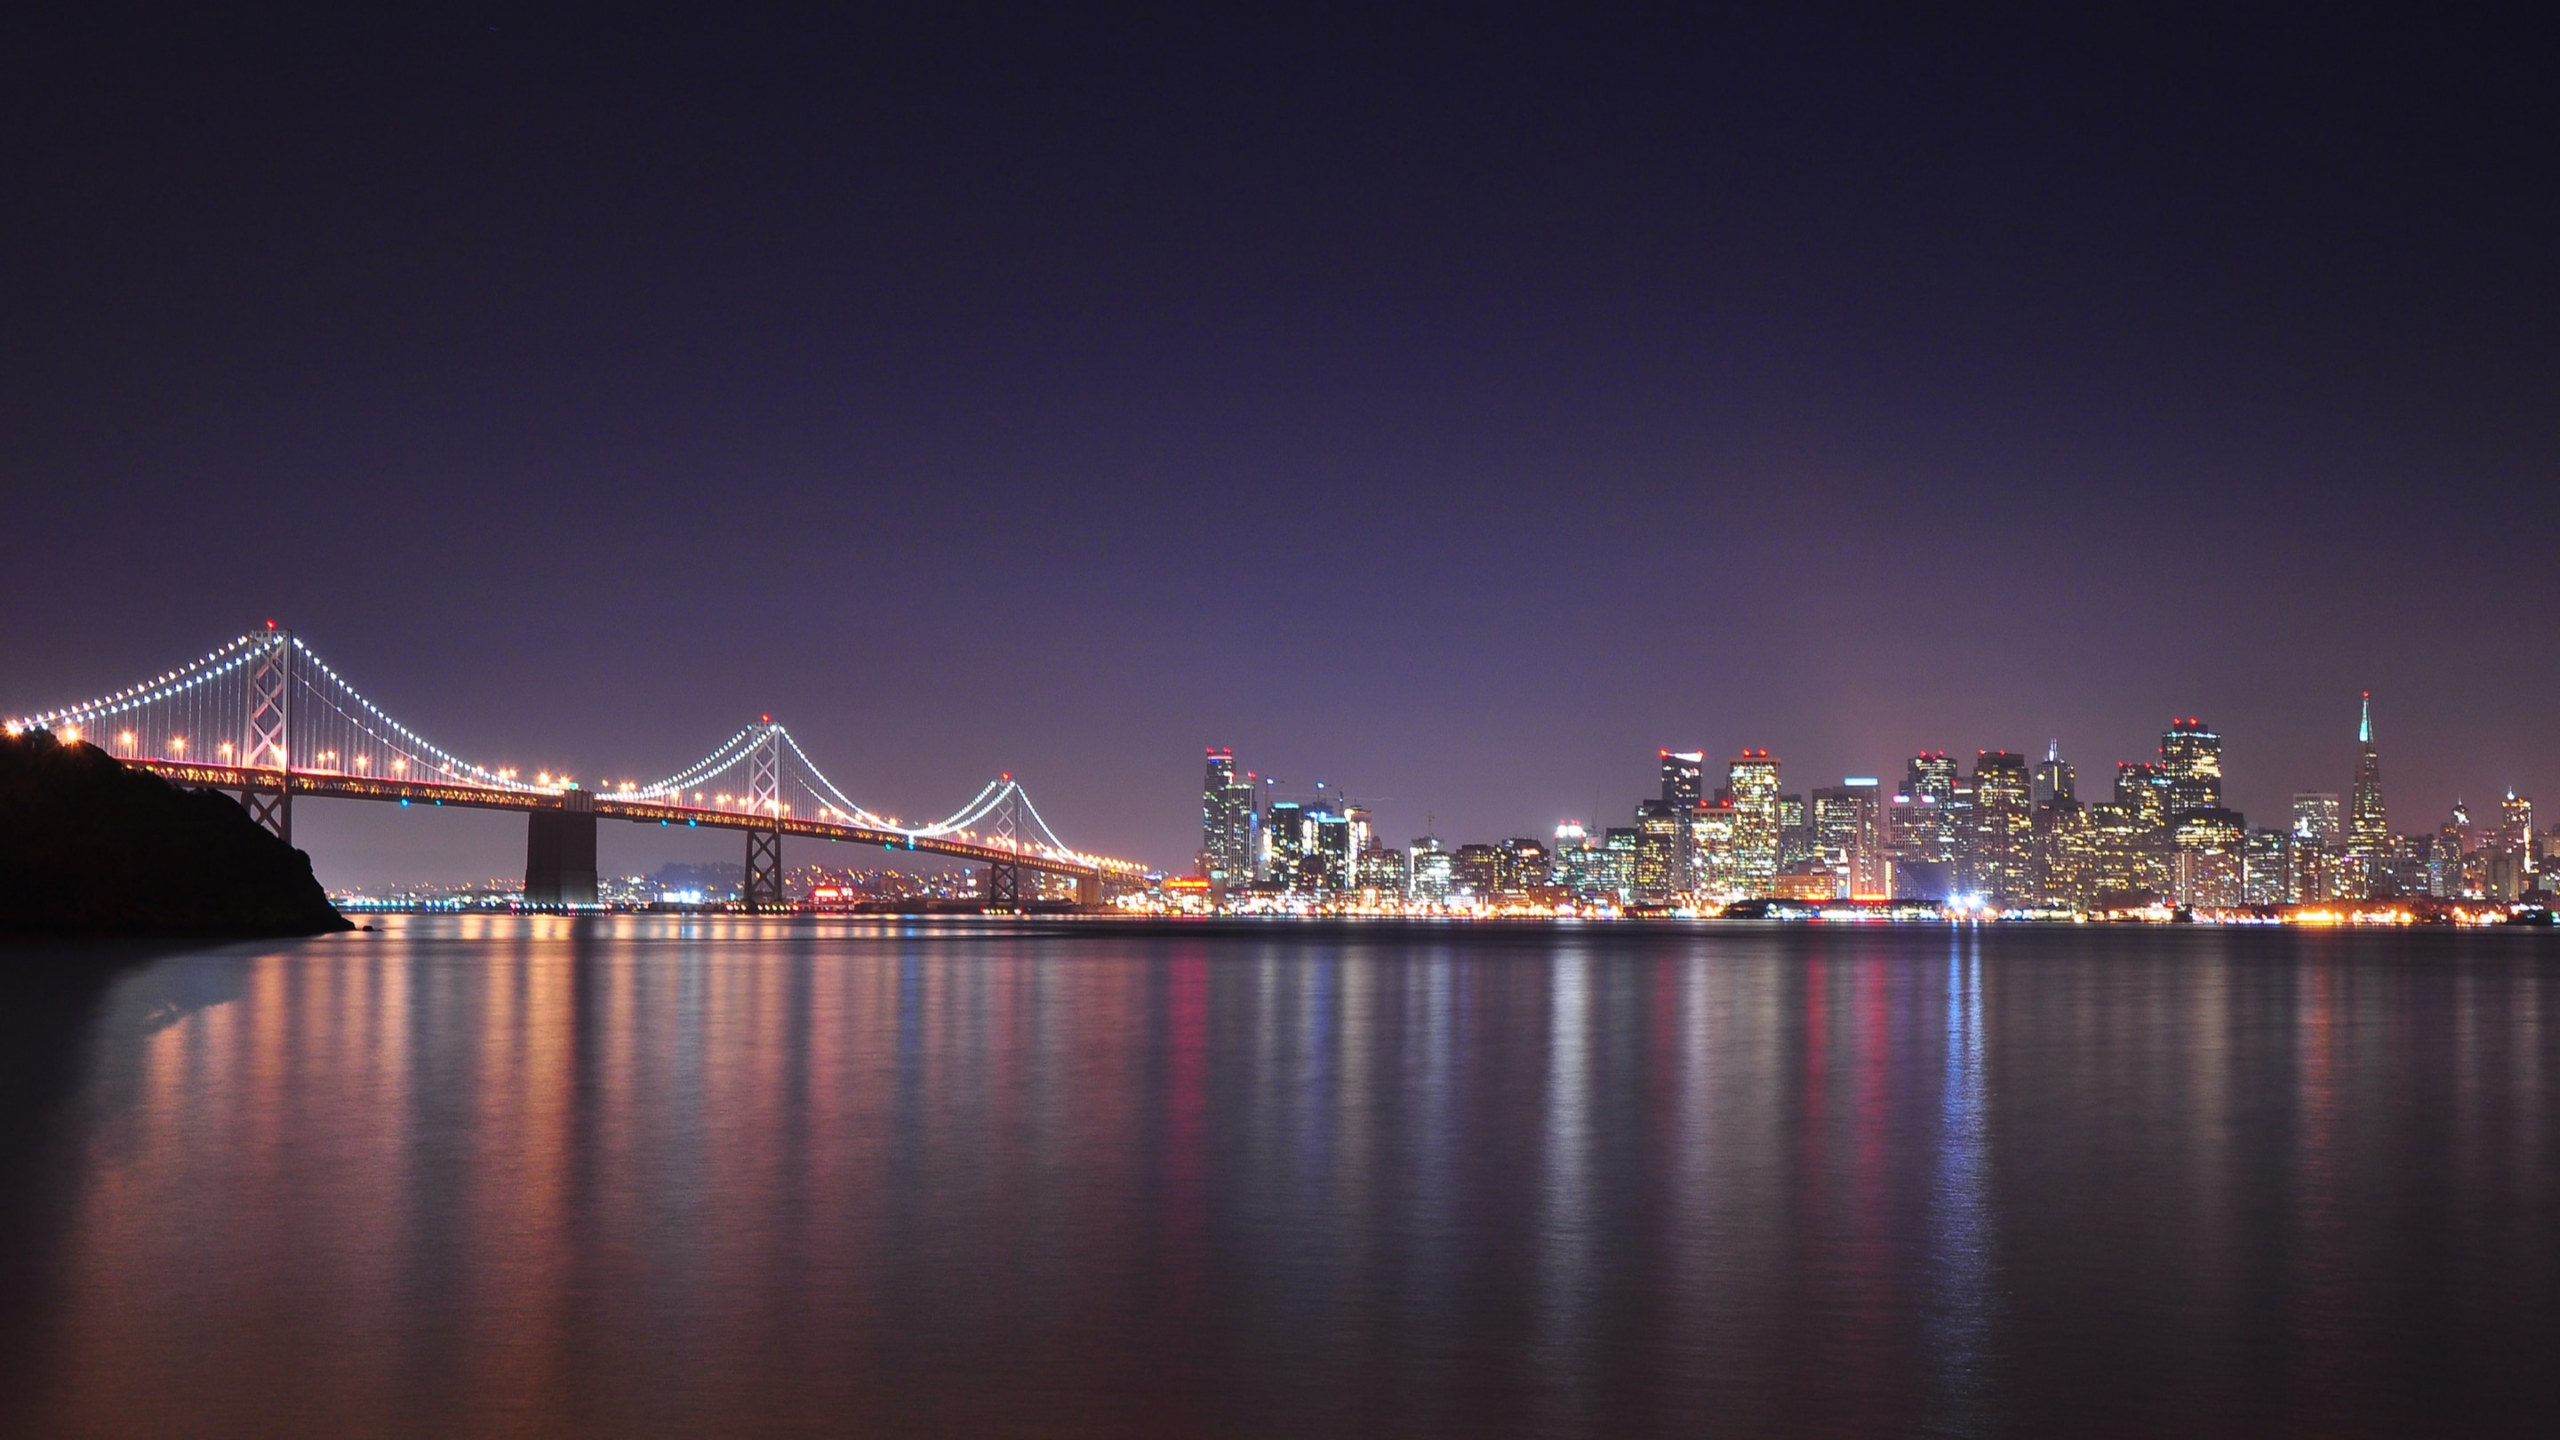 san-francisco-aspect-ratio-2560-1440